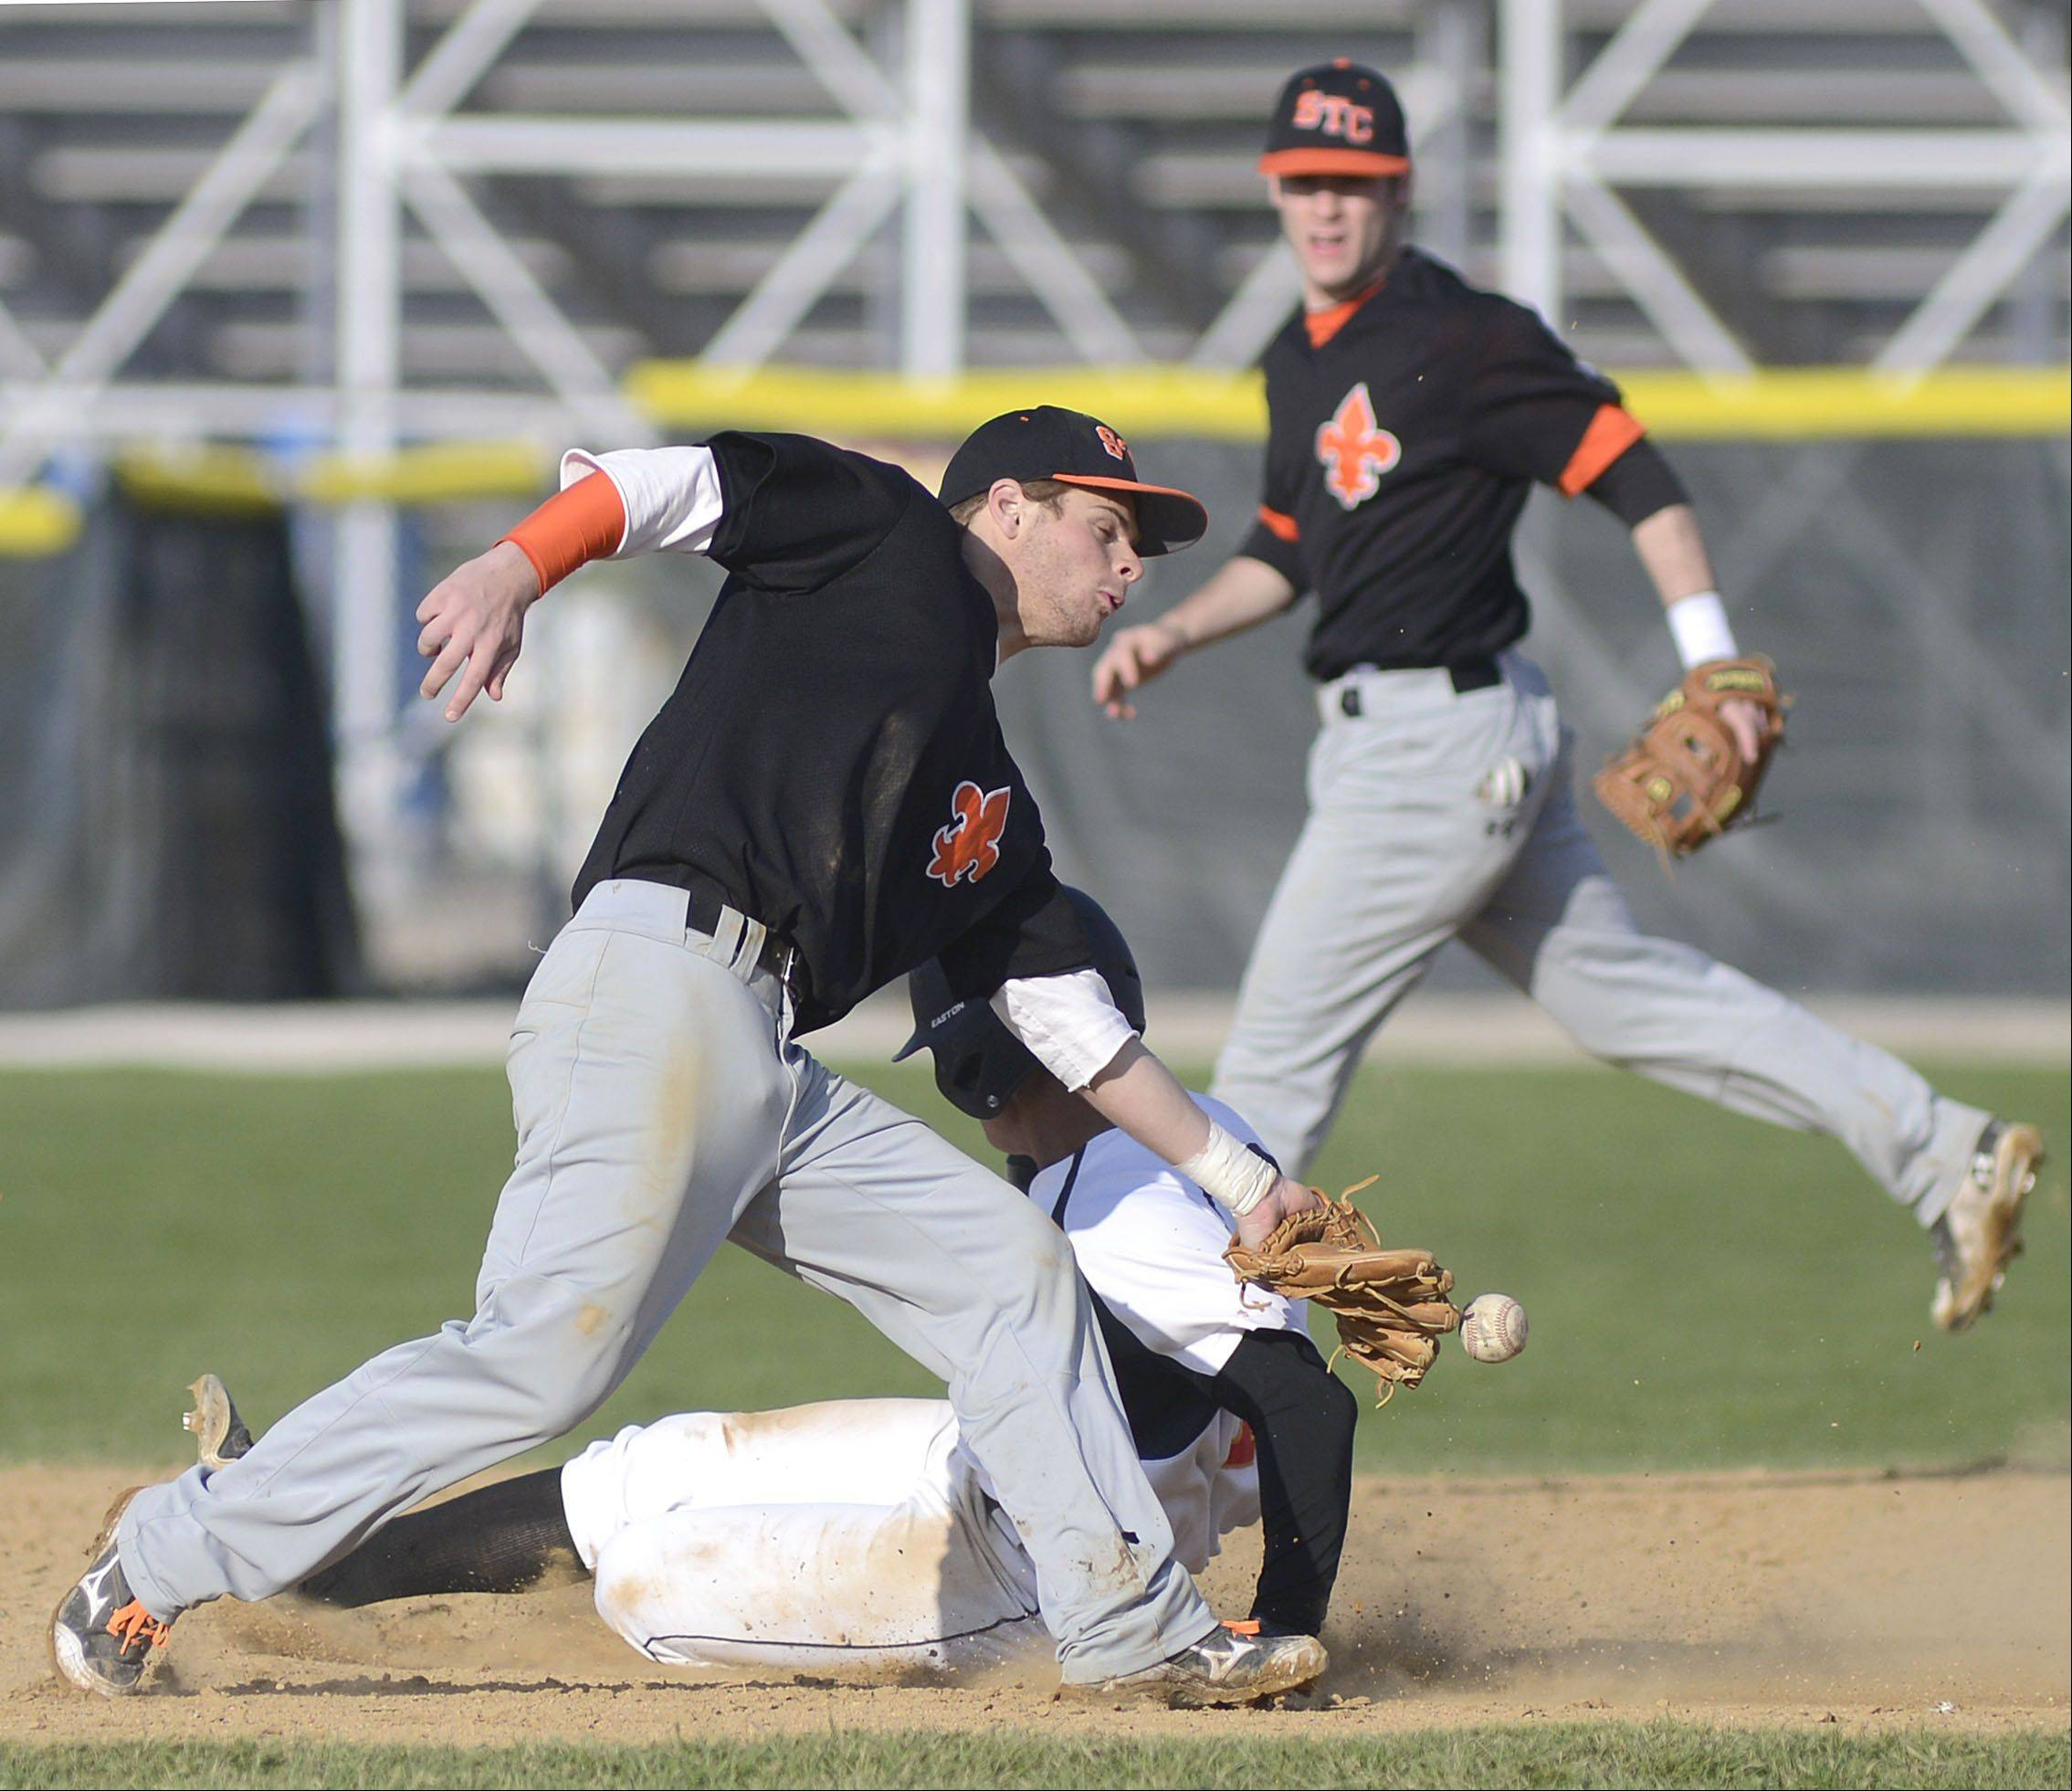 Batavia's Laren Eustace slips past St. Charles East's Nicholas Erickson and the ball to land safely on second base in the fifth inning on Wednesday, April 24.